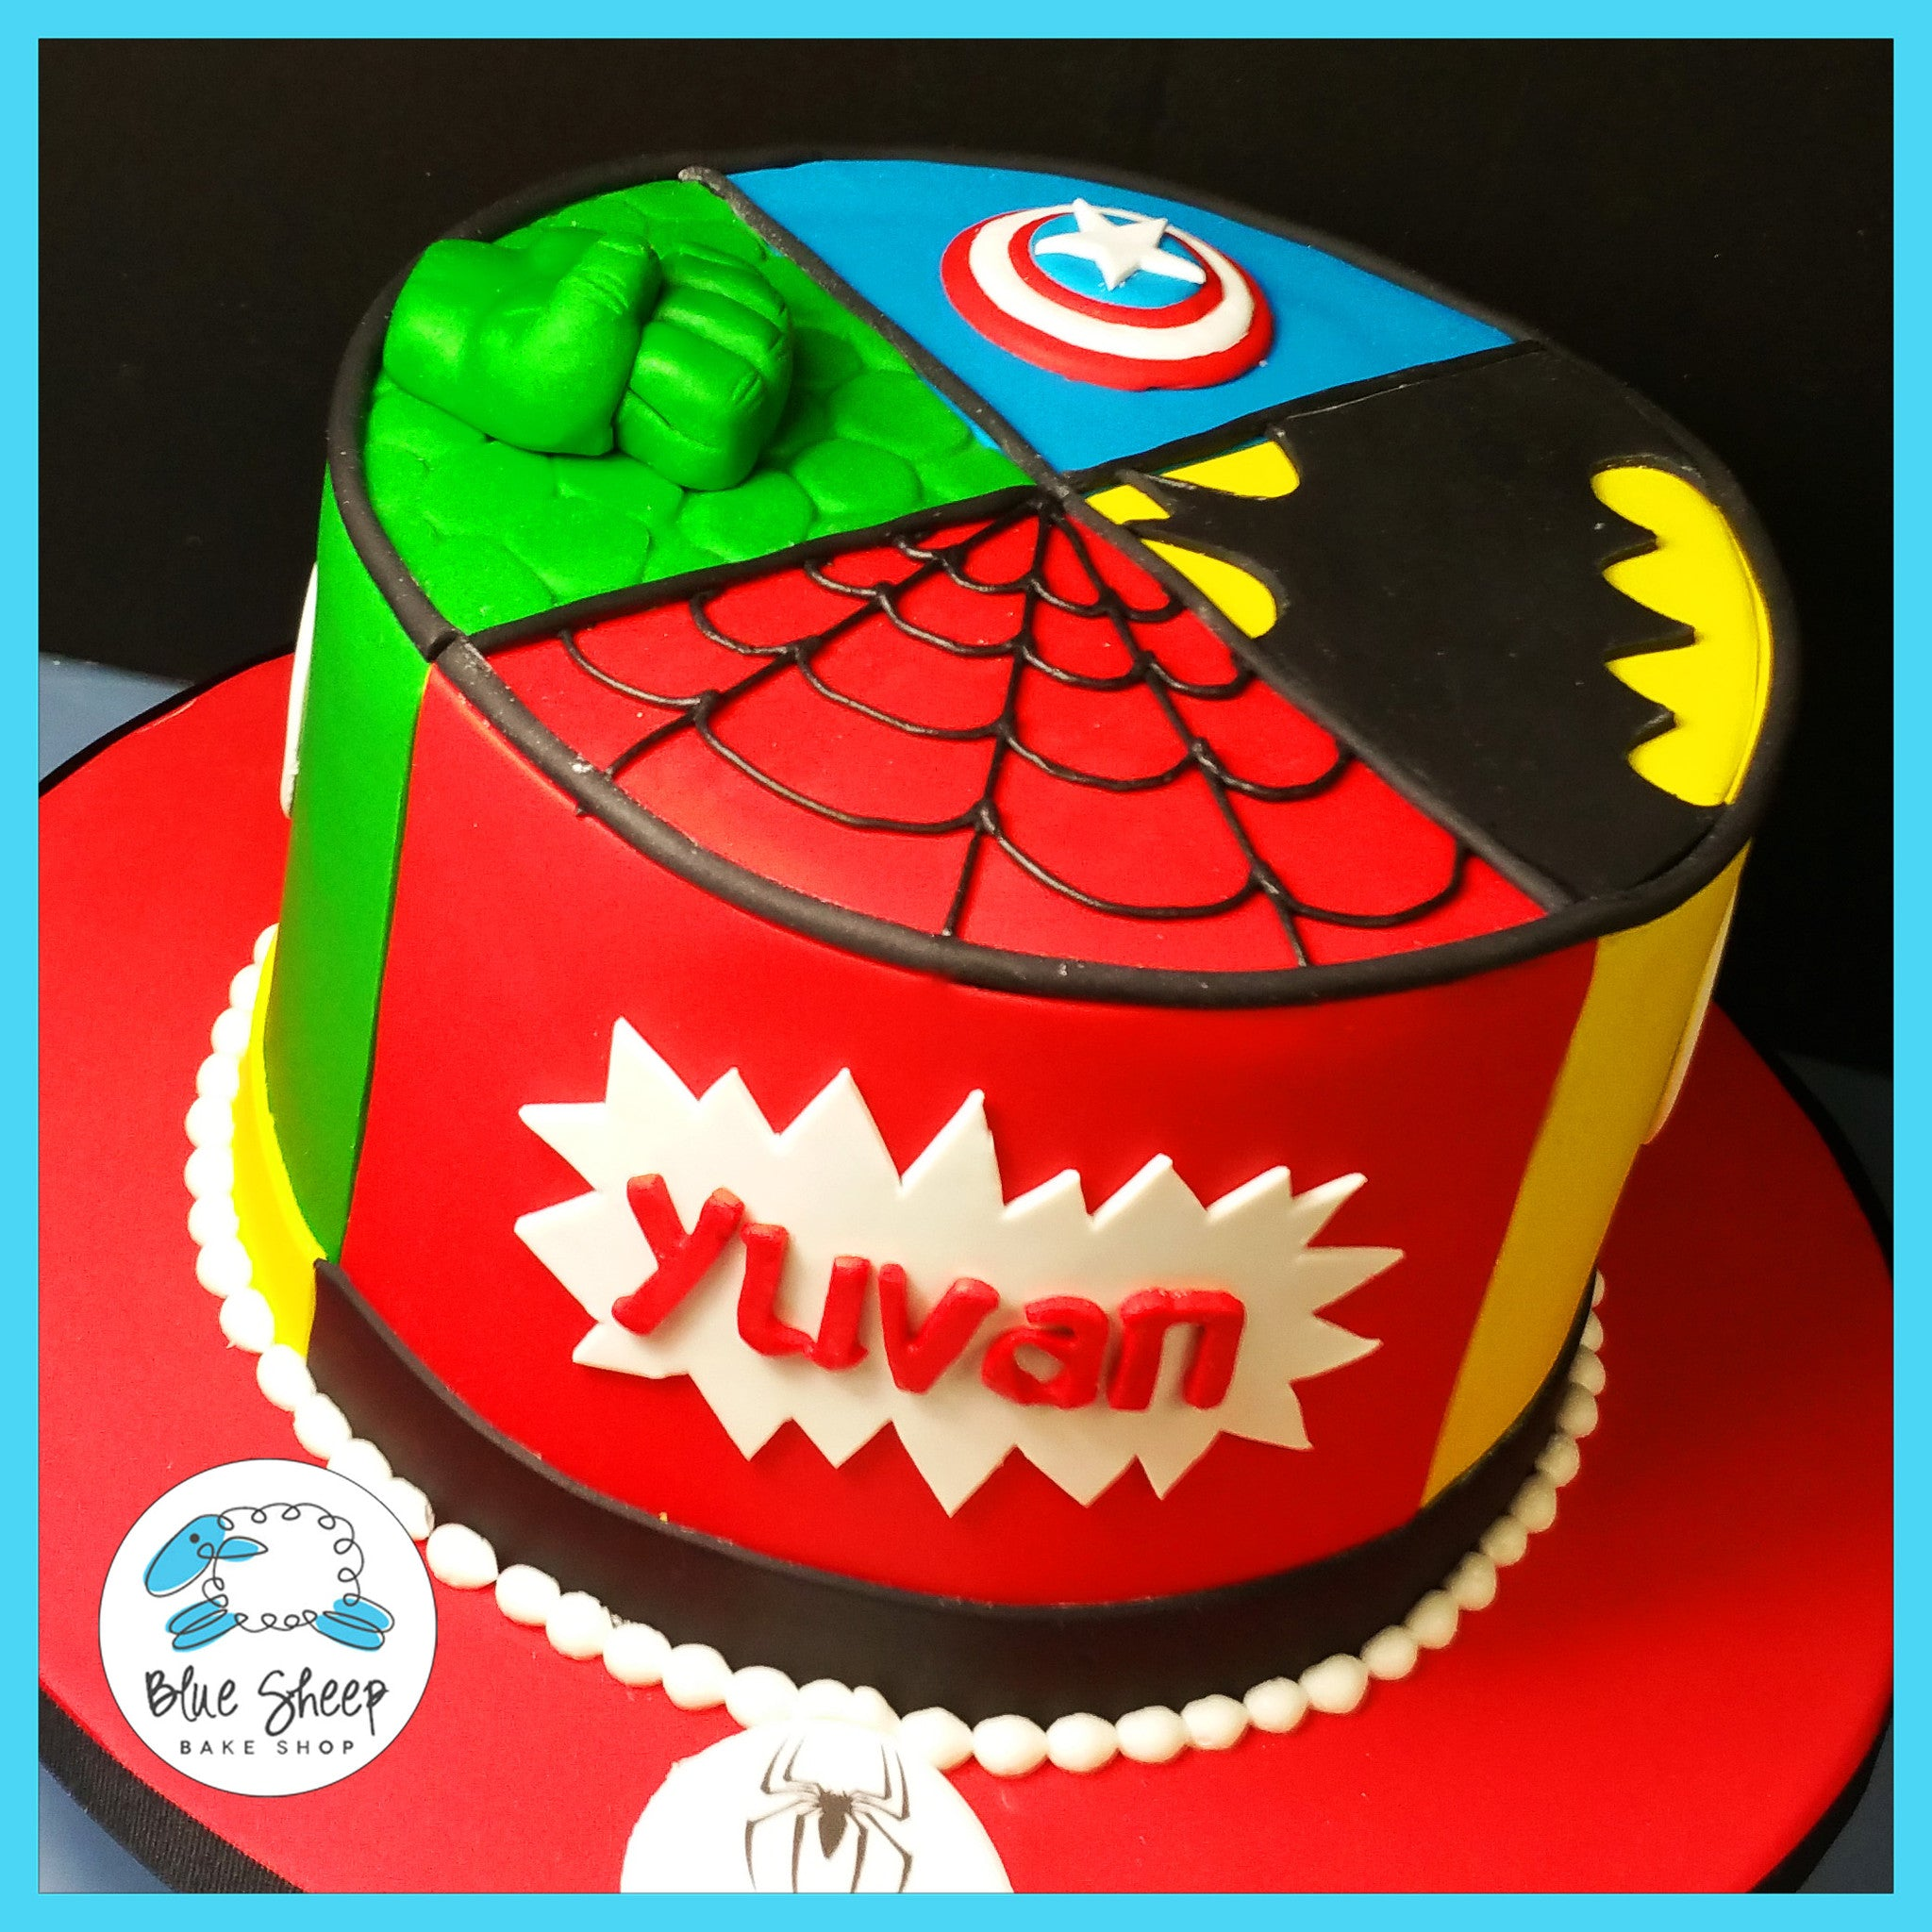 superhero birthday cake Superhero Birthday Cake | Blue Sheep Bake Shop superhero birthday cake